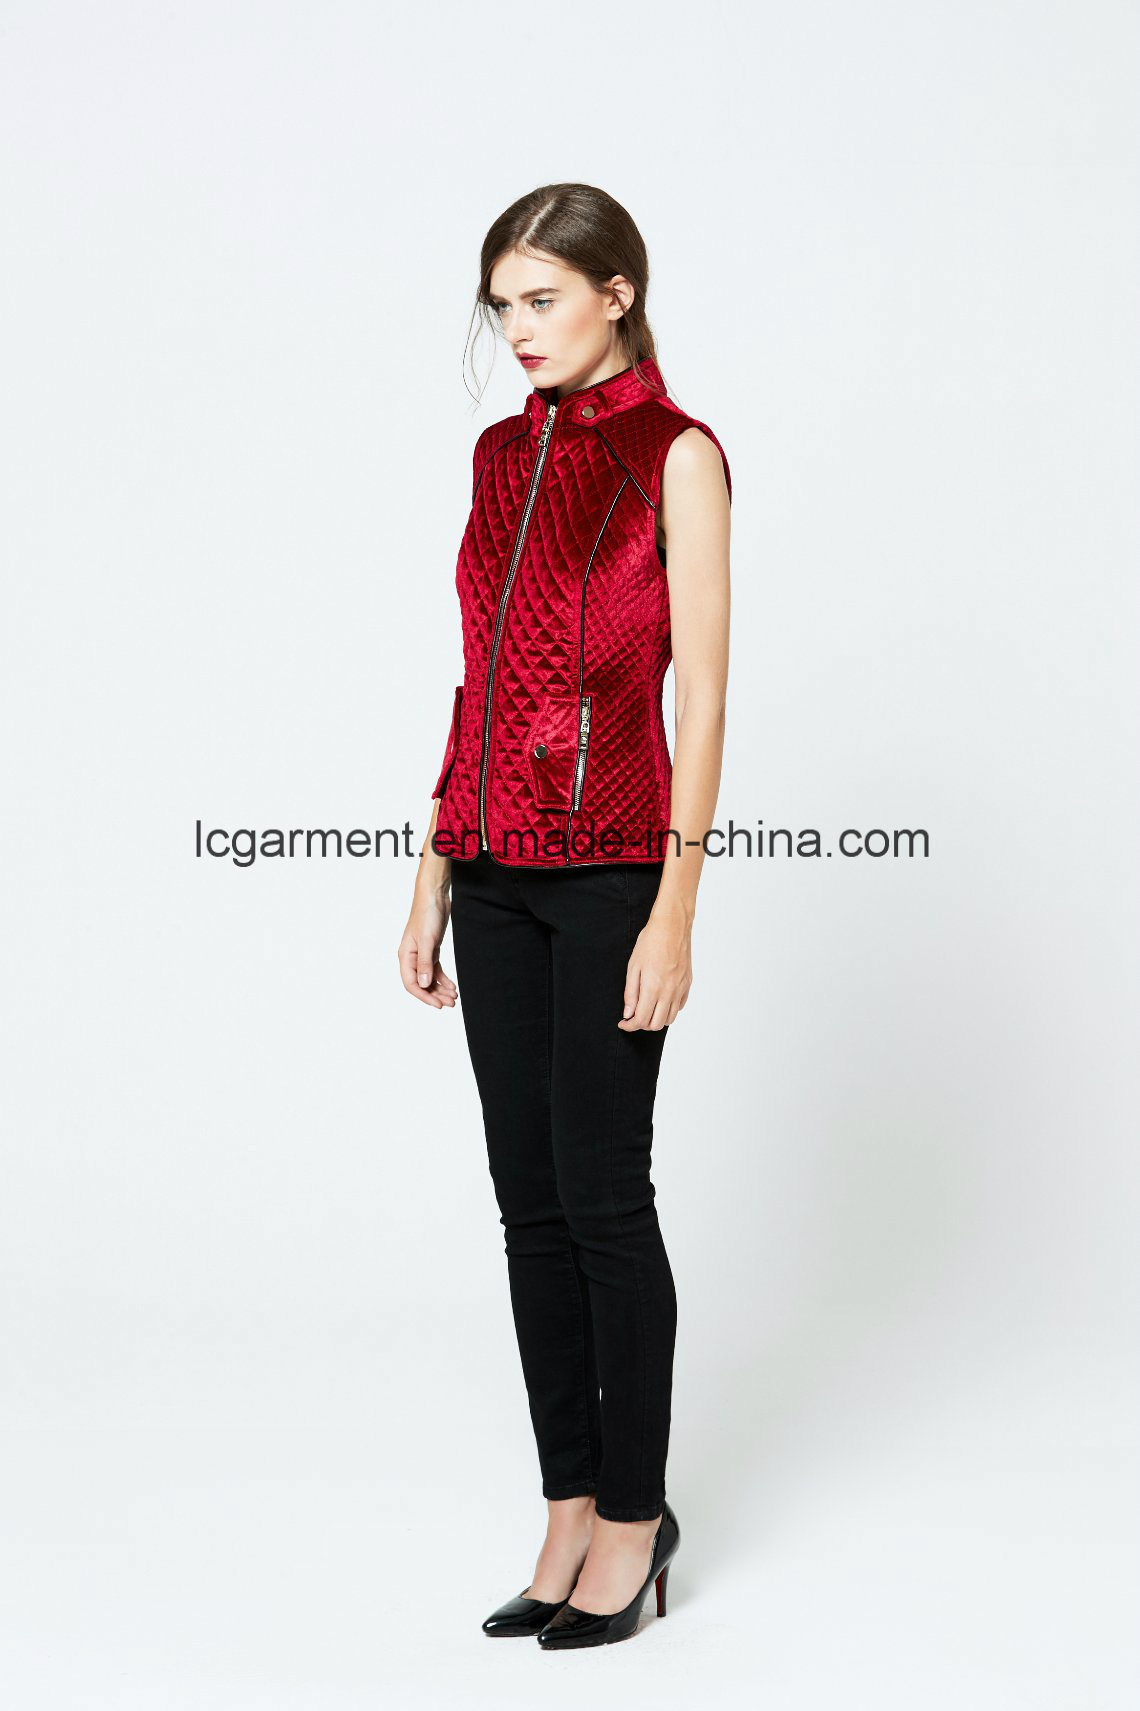 Hot Sale Fashion Faux Suede Red Leather Vest Zipper Woman Waistcoat